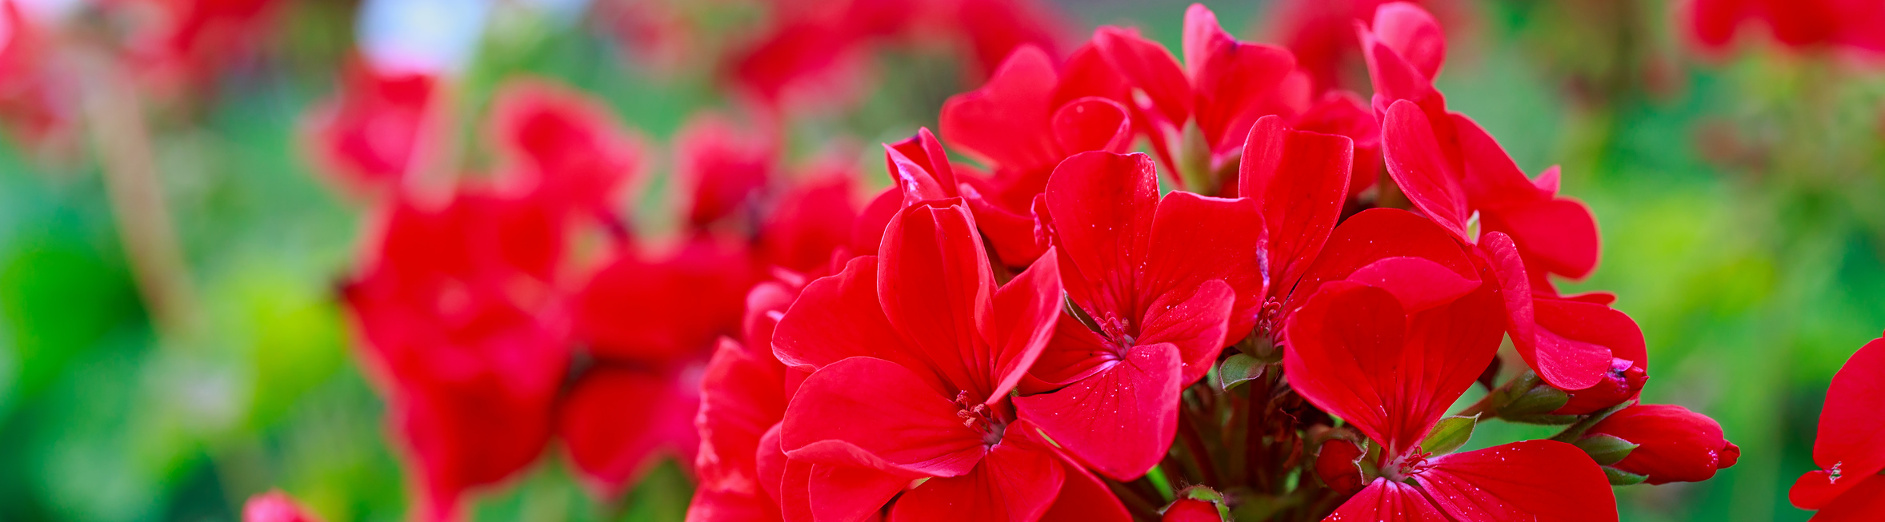 Red geraniums in a summer garden.